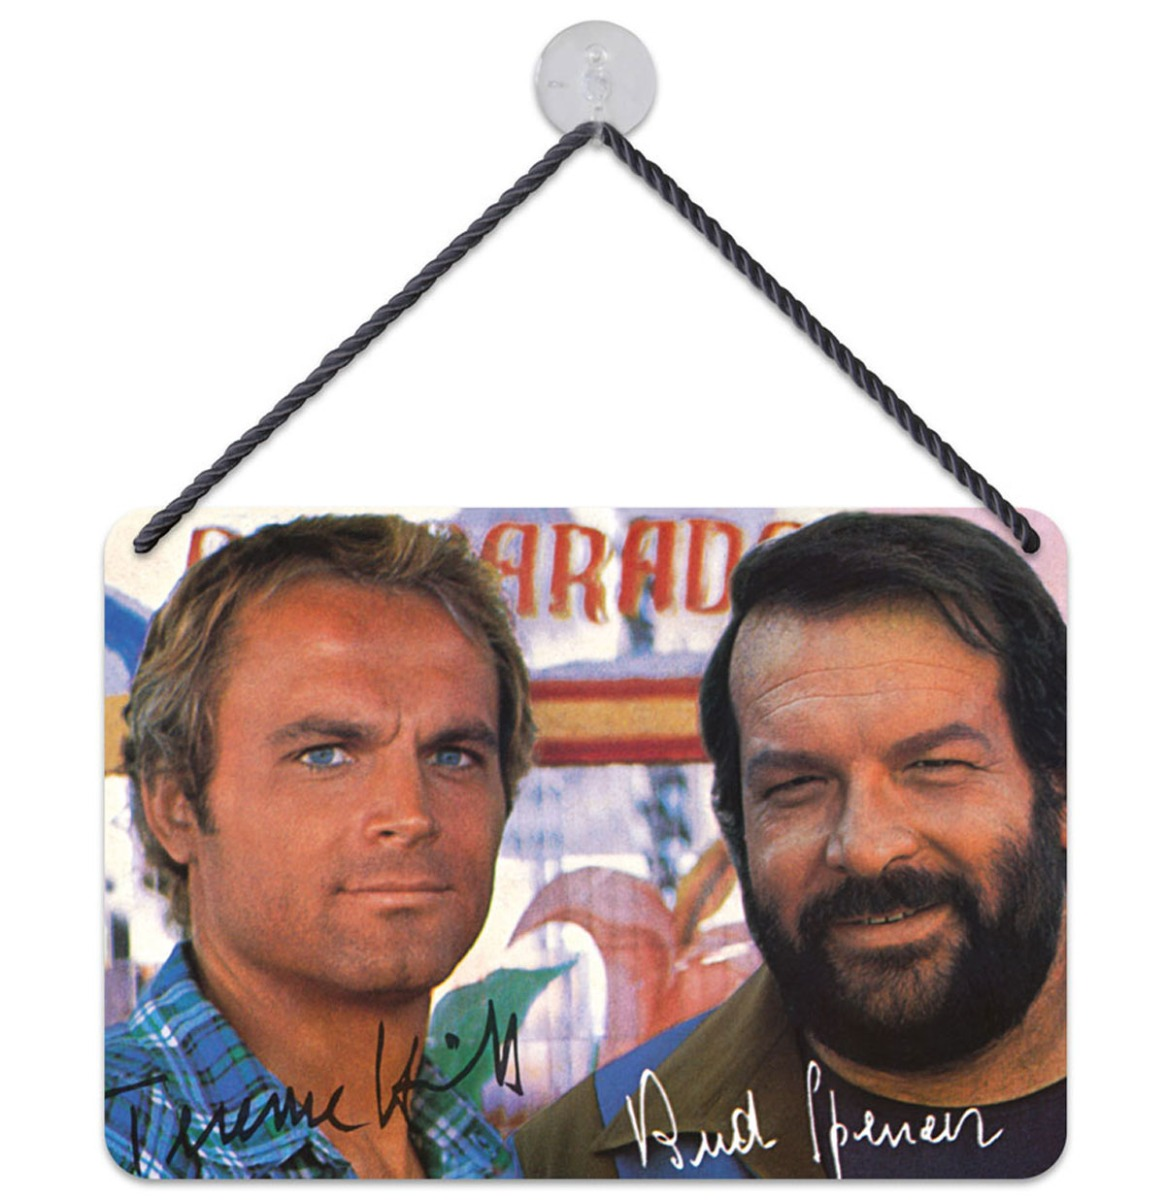 Bud Spencer Terence Hill Autograph Hangend Bord 16,5 x 11,5 cm